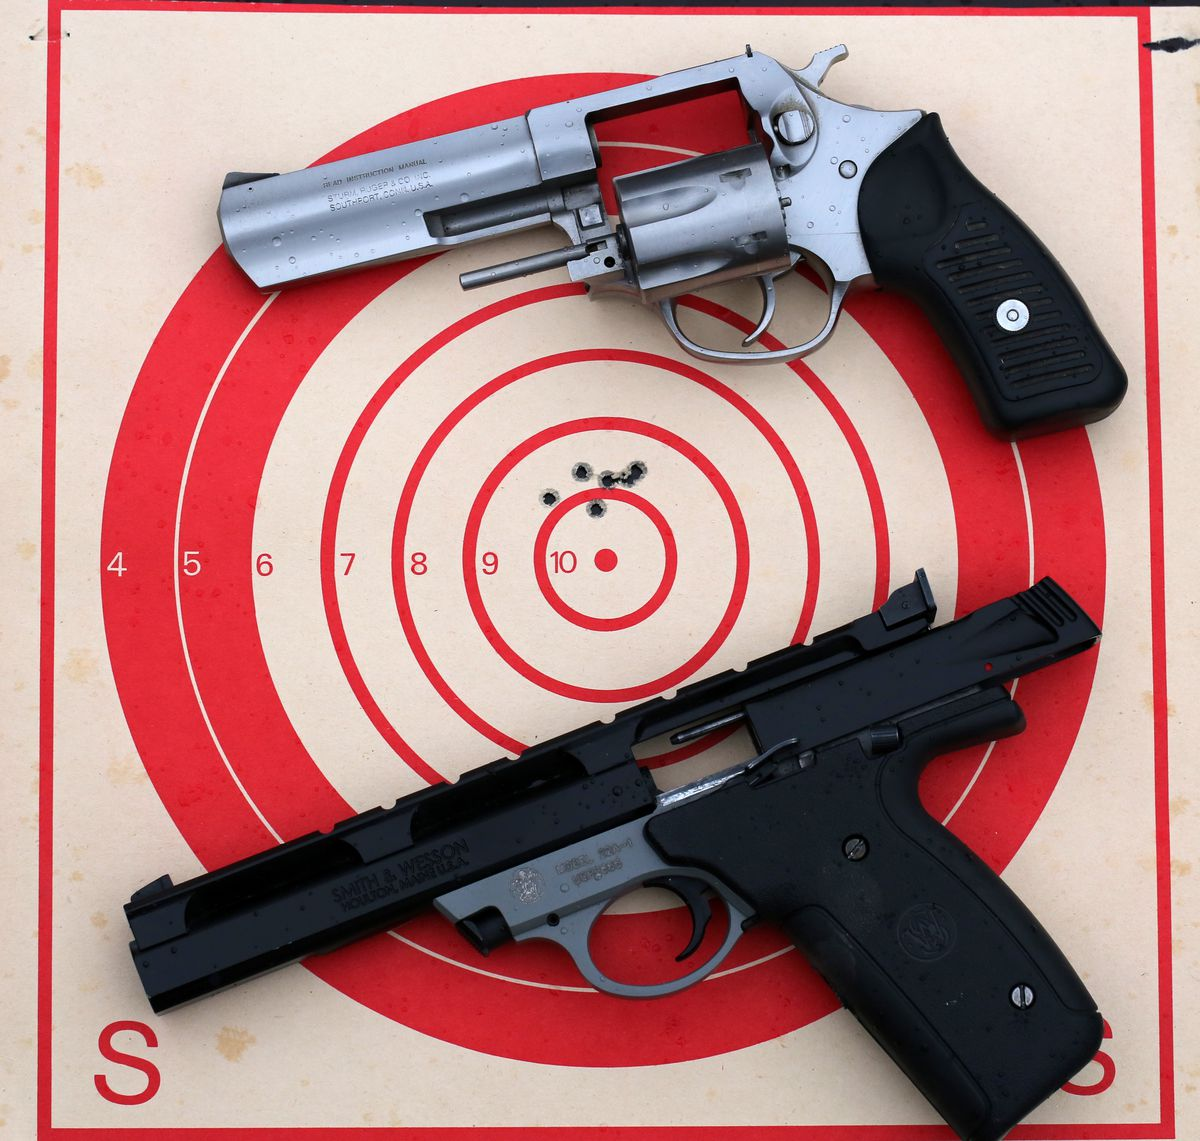 .22 caliber rimfire handguns in revolver or semi-auto variations are good first handgun choices. (Steve Meyer)